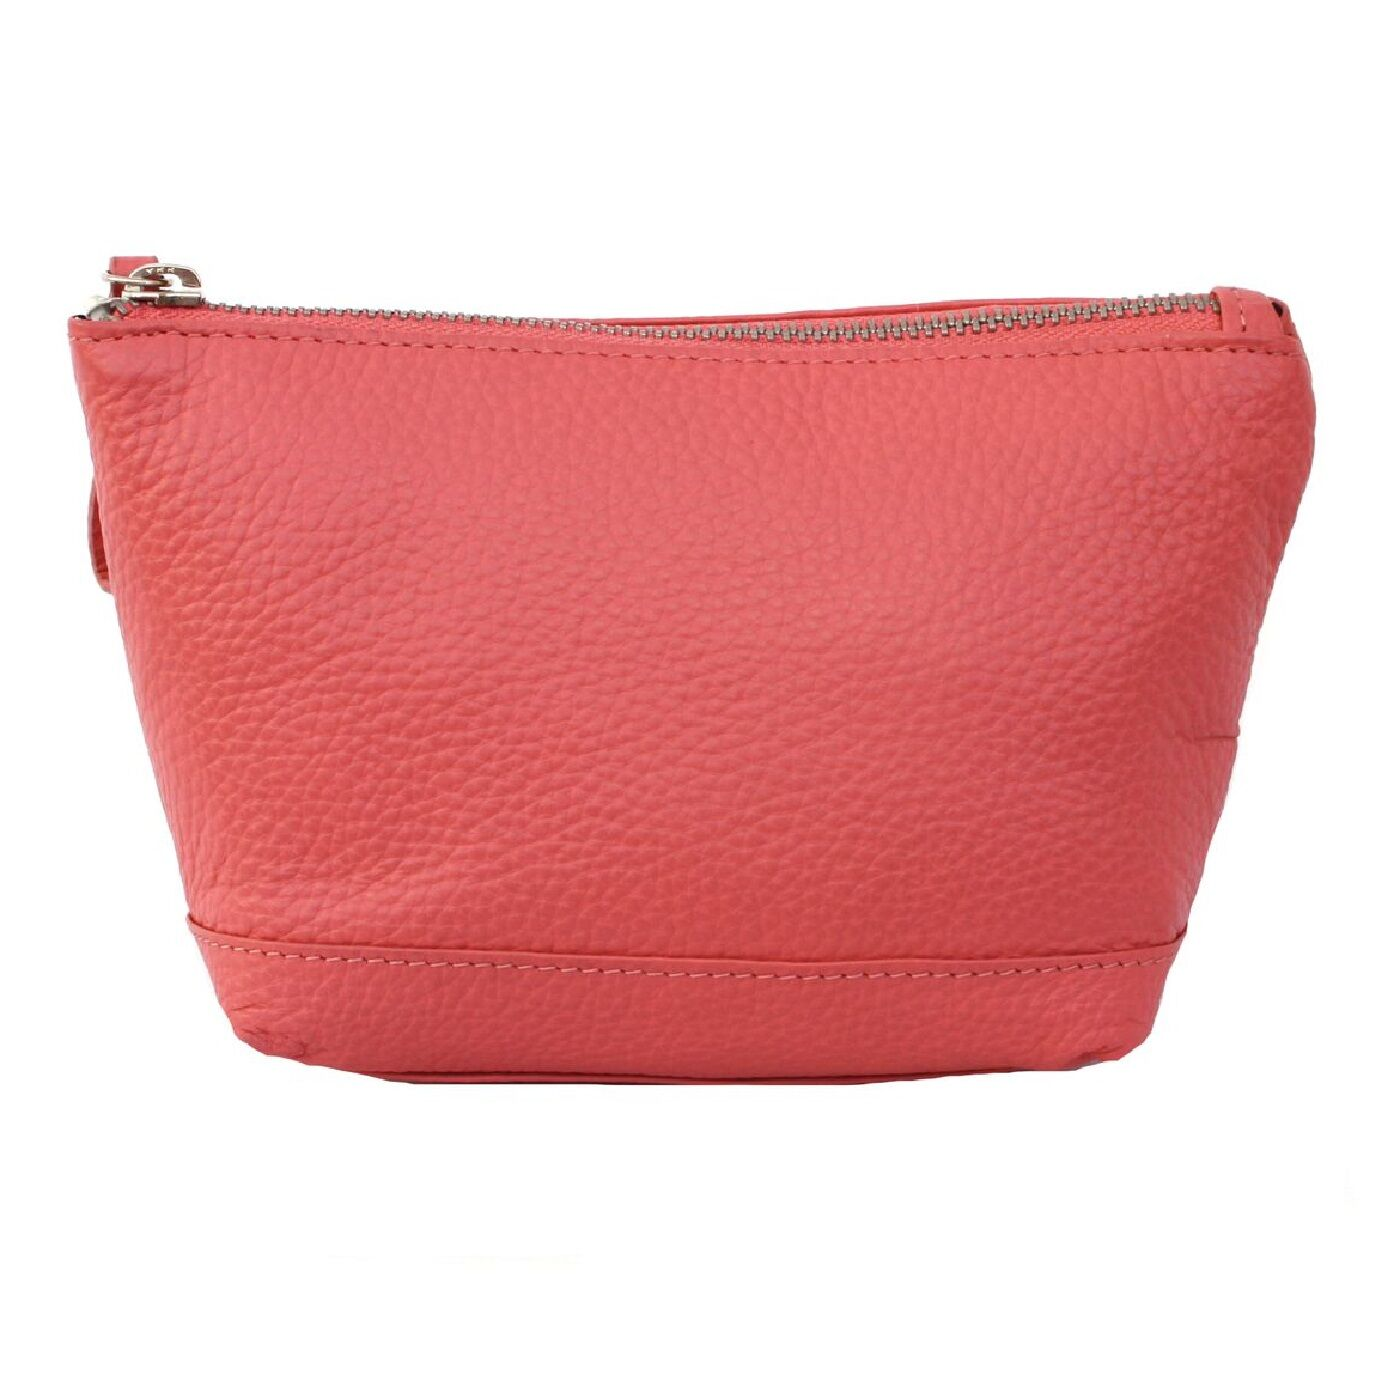 Eastern Counties Leather - Trousse À Maquillage Cora - Femme (Corail) (Taille unique) - UTEL131